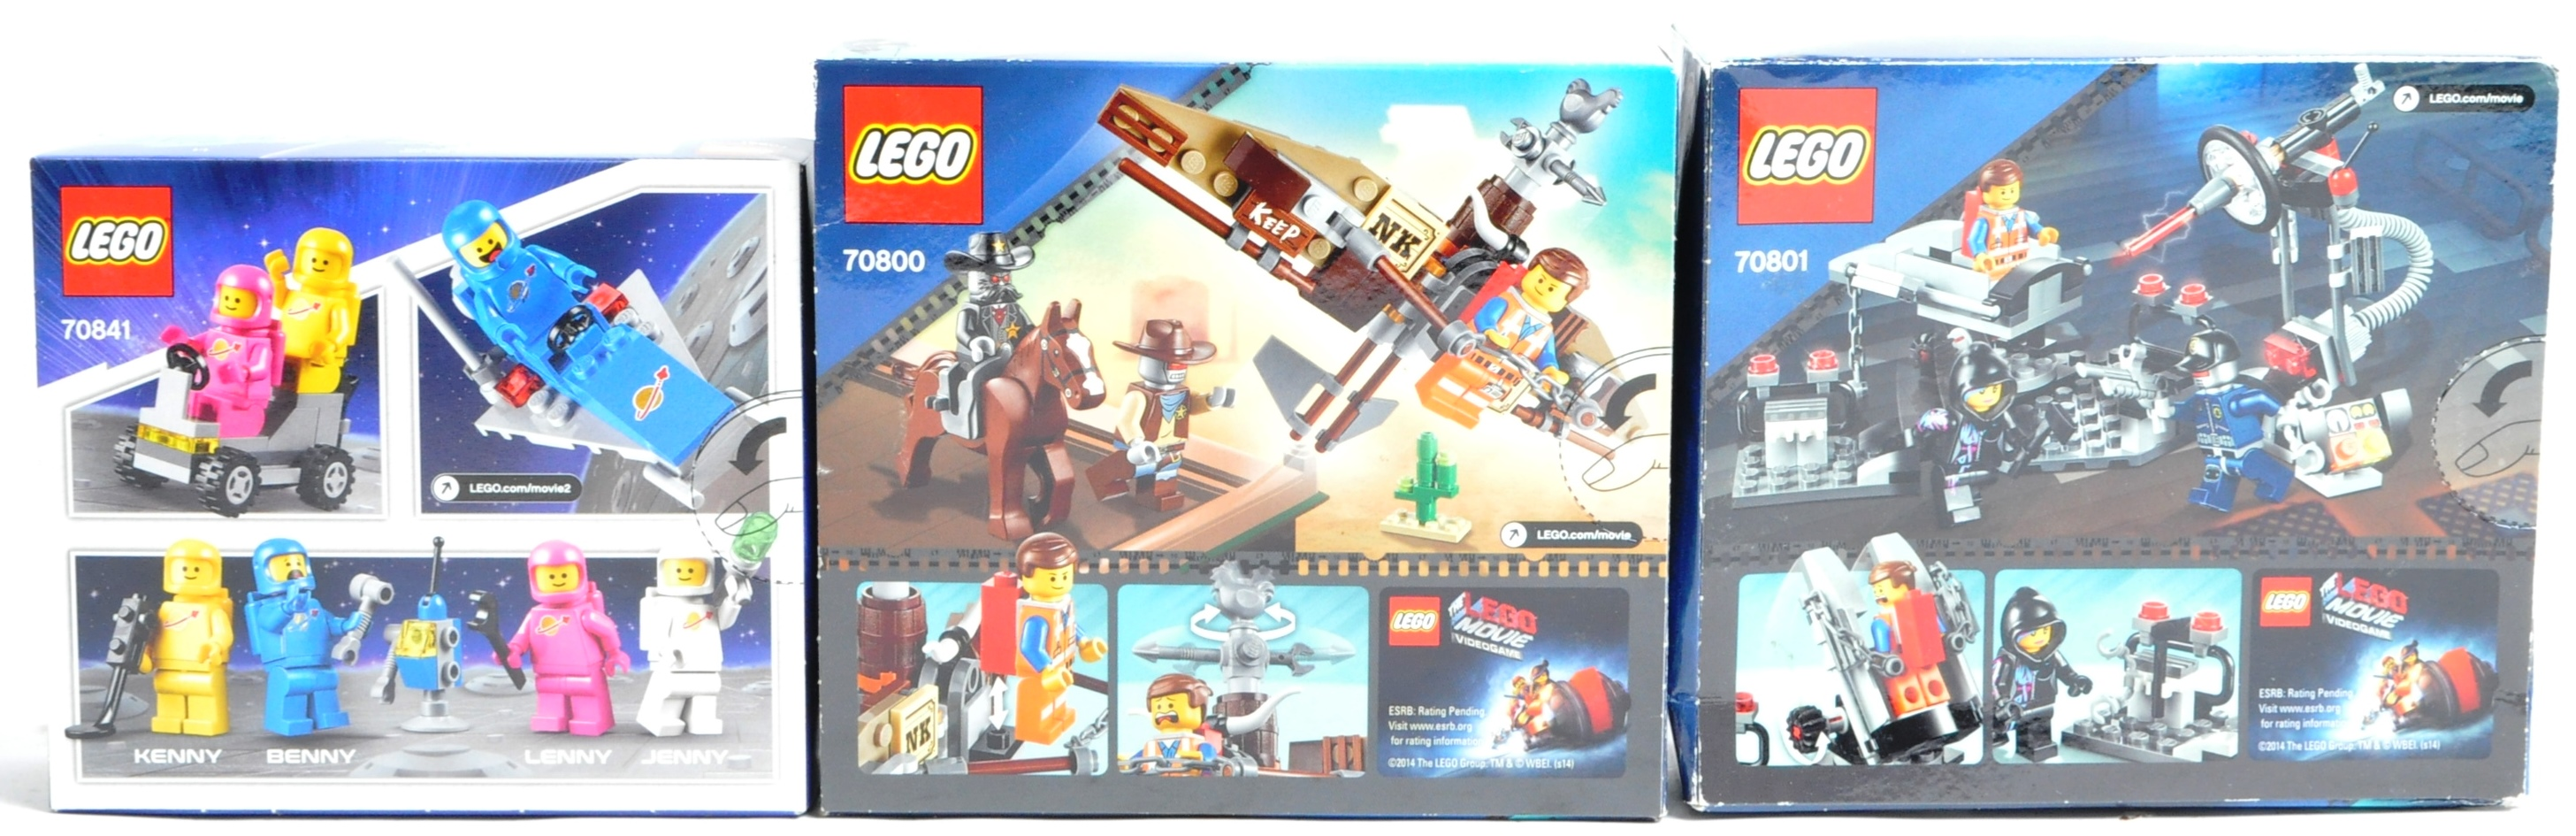 LEGO SETS - THE LEGO MOVIE - COLLECTION OF X7 LEGO MOVIE SETS - Image 9 of 17